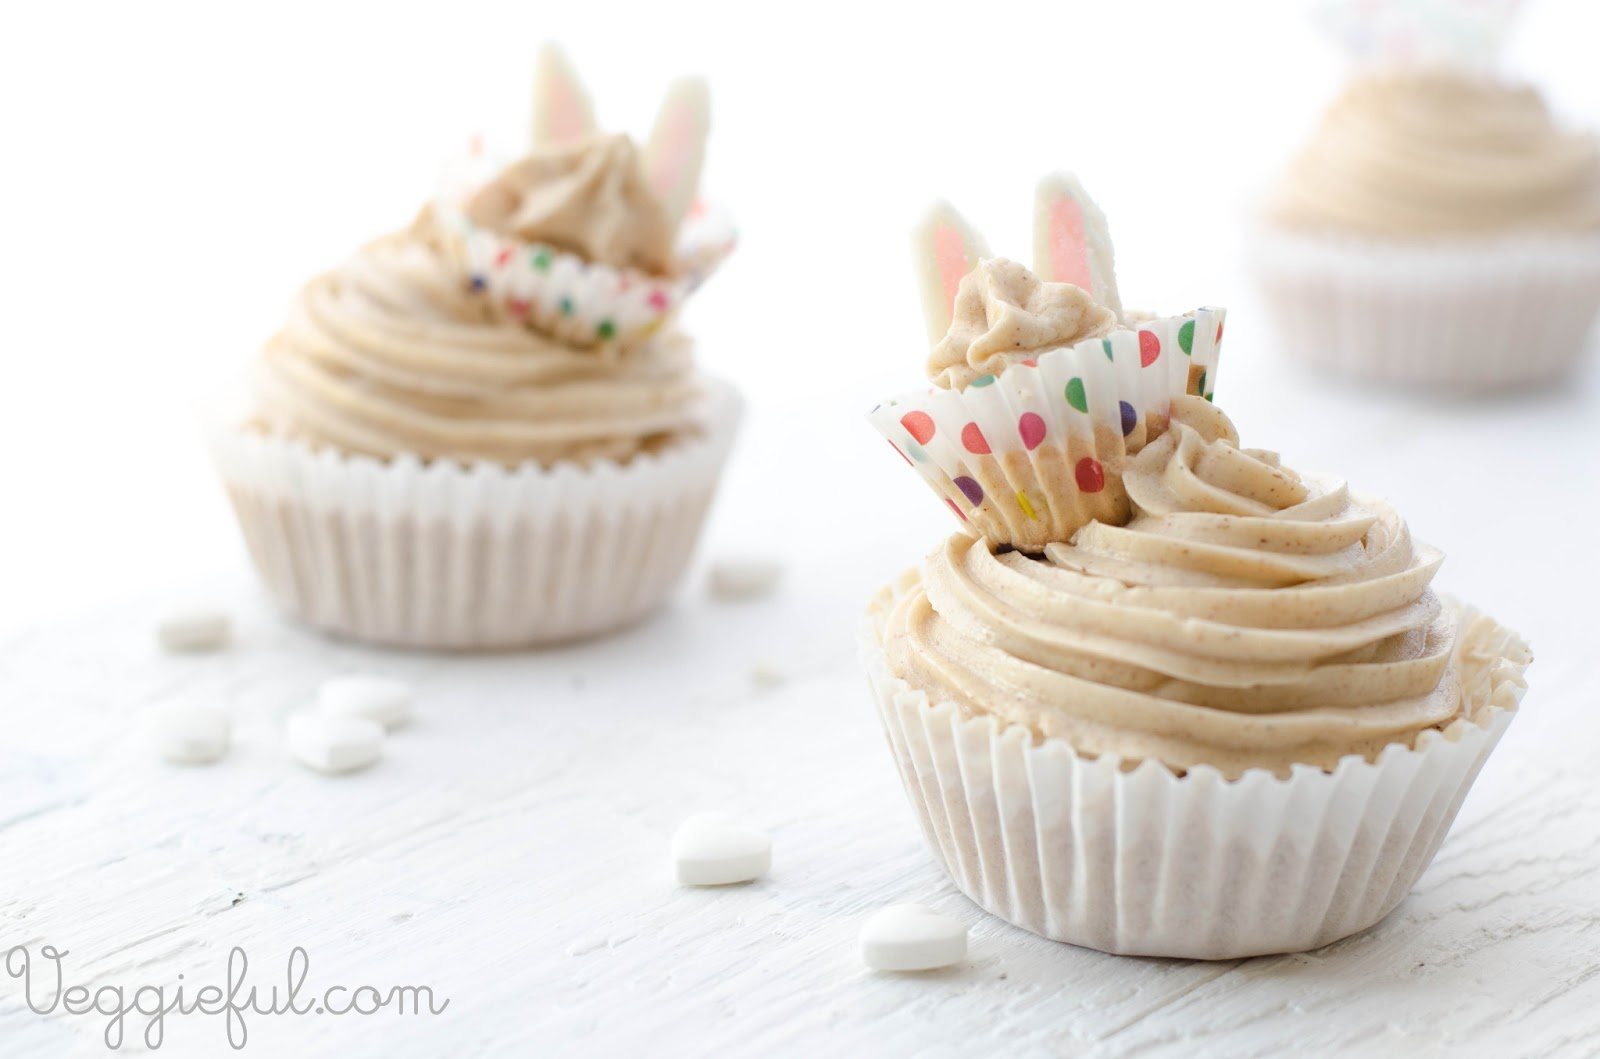 Cake With Cupcake Recipe : Veggieful: Vegan Easter Carrot Cupcake Recipe